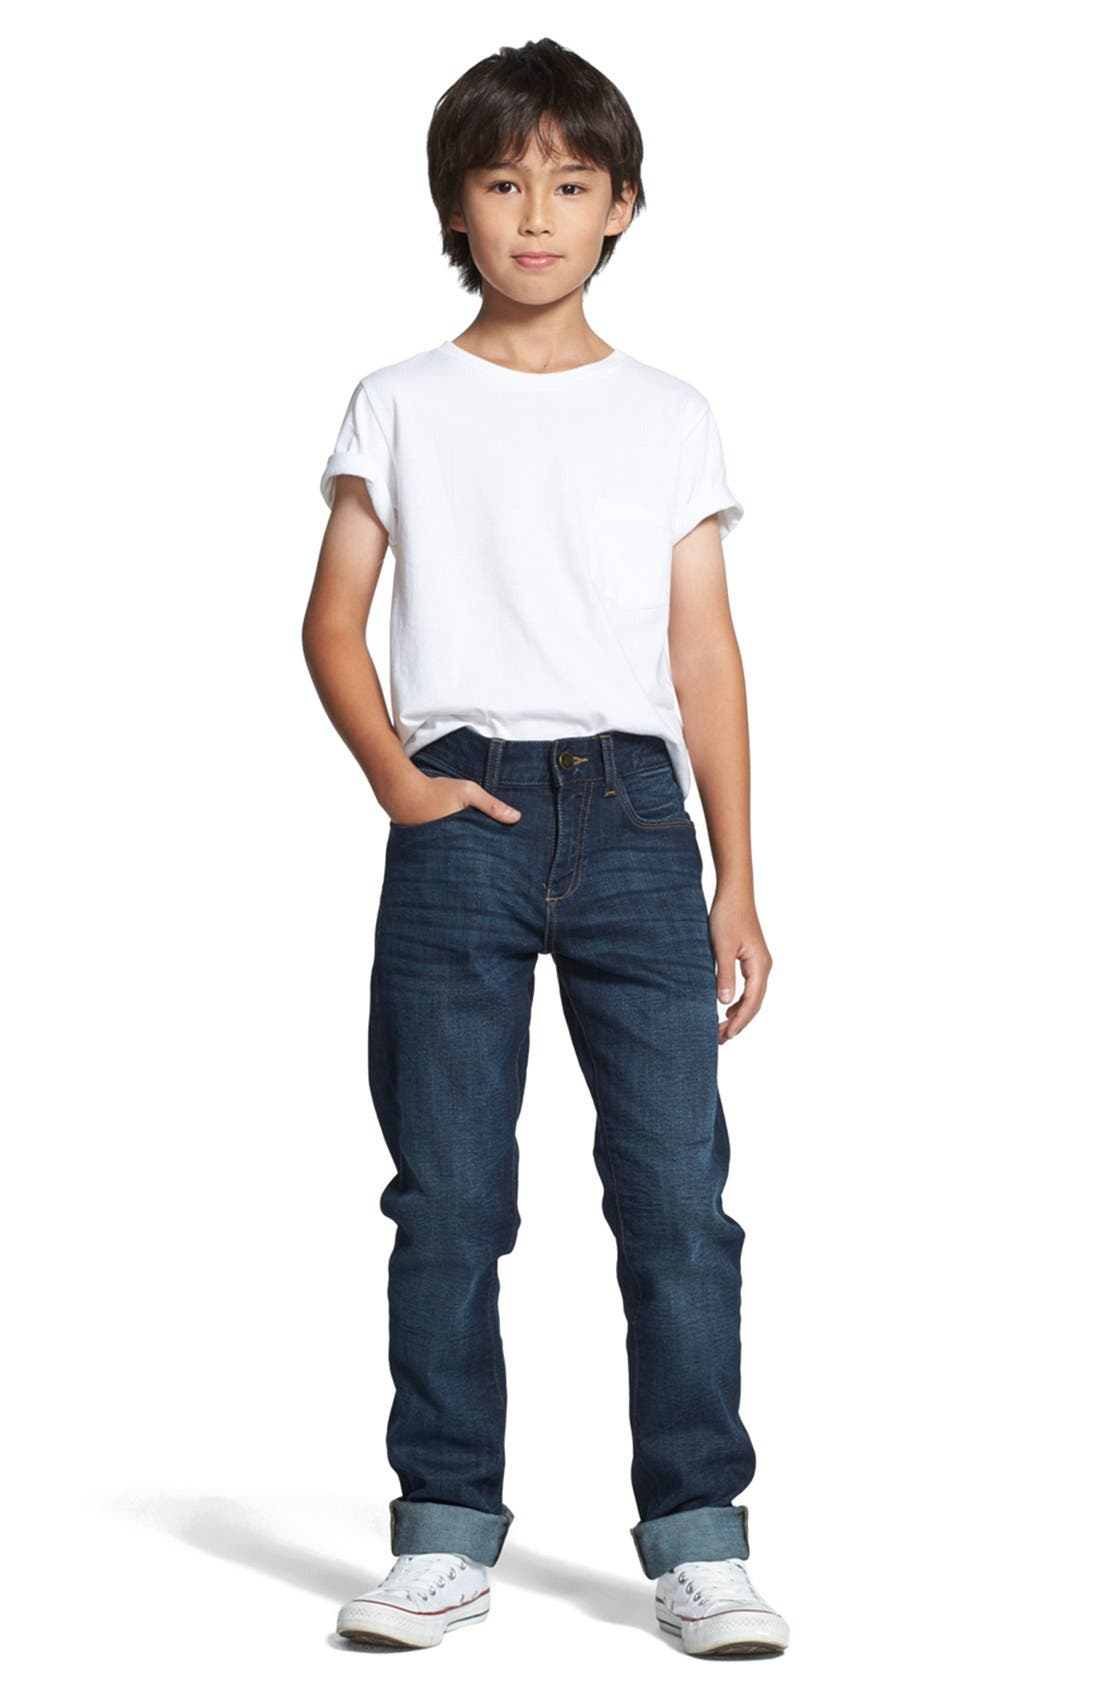 'Brady' Slim Fit Jeans,                             Alternate thumbnail 5, color,                             FERRET